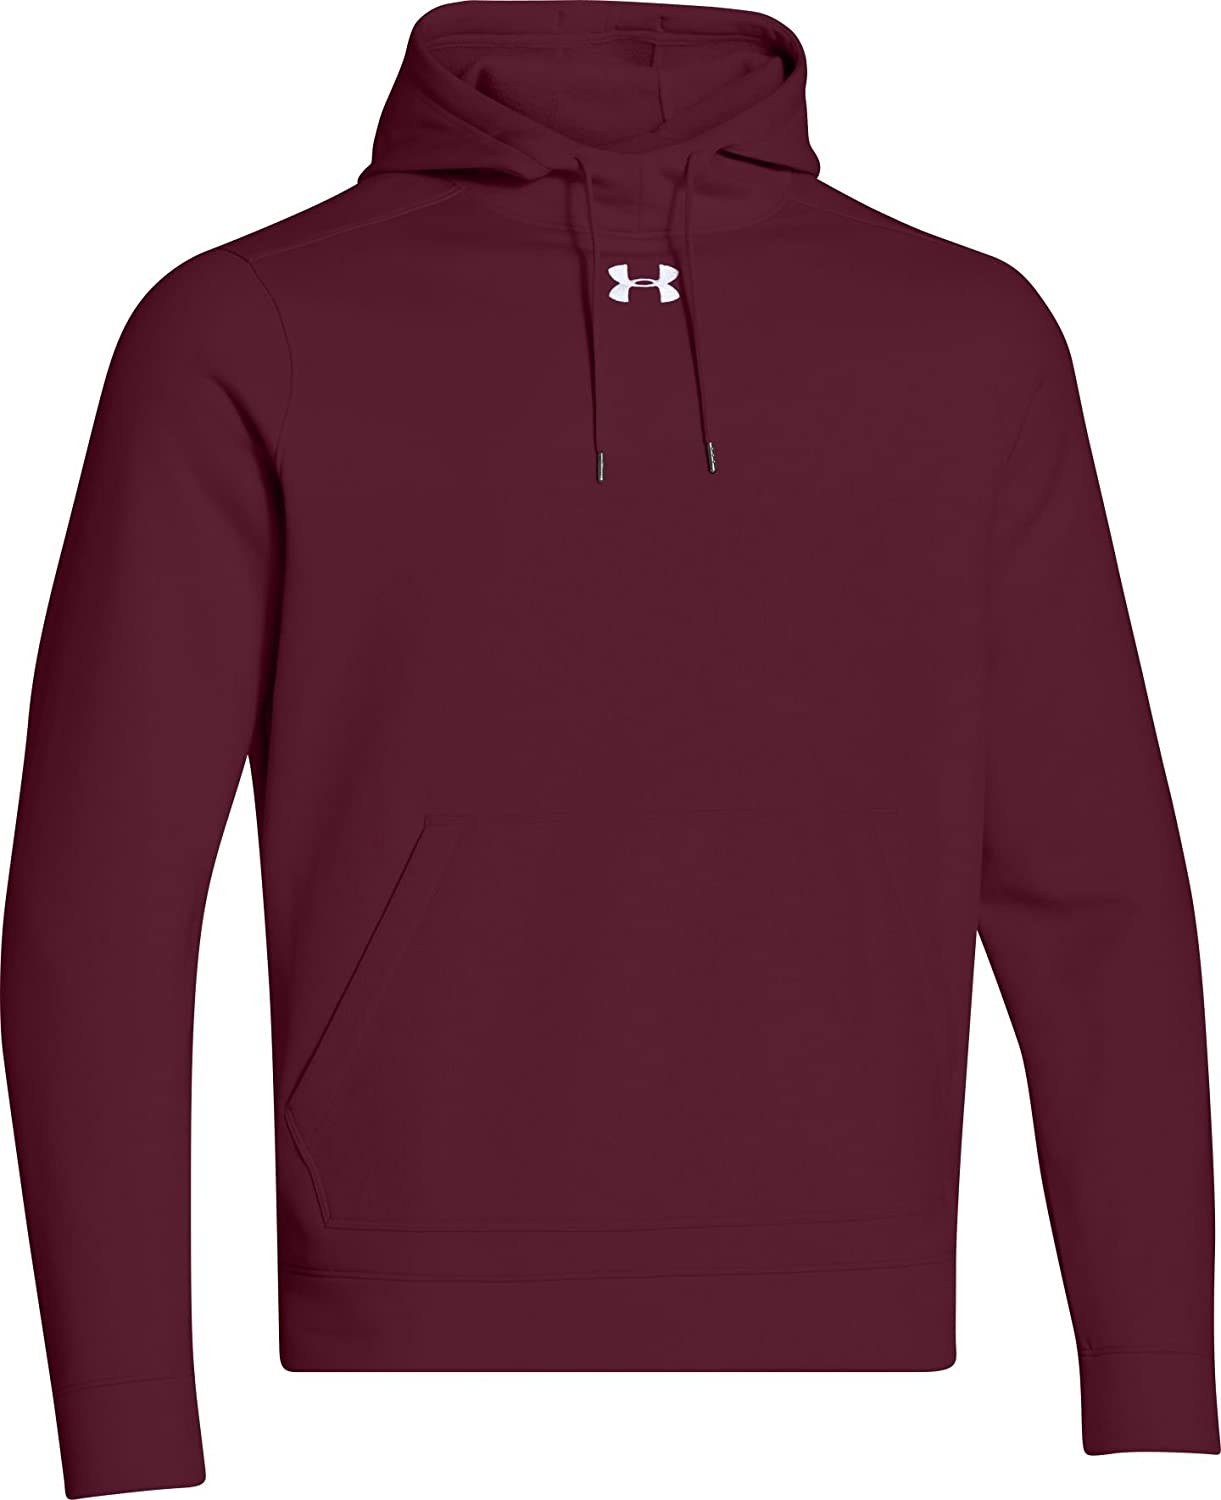 Under Armour Men's UA Storm Armour Fleece Team Hoodie 1259080